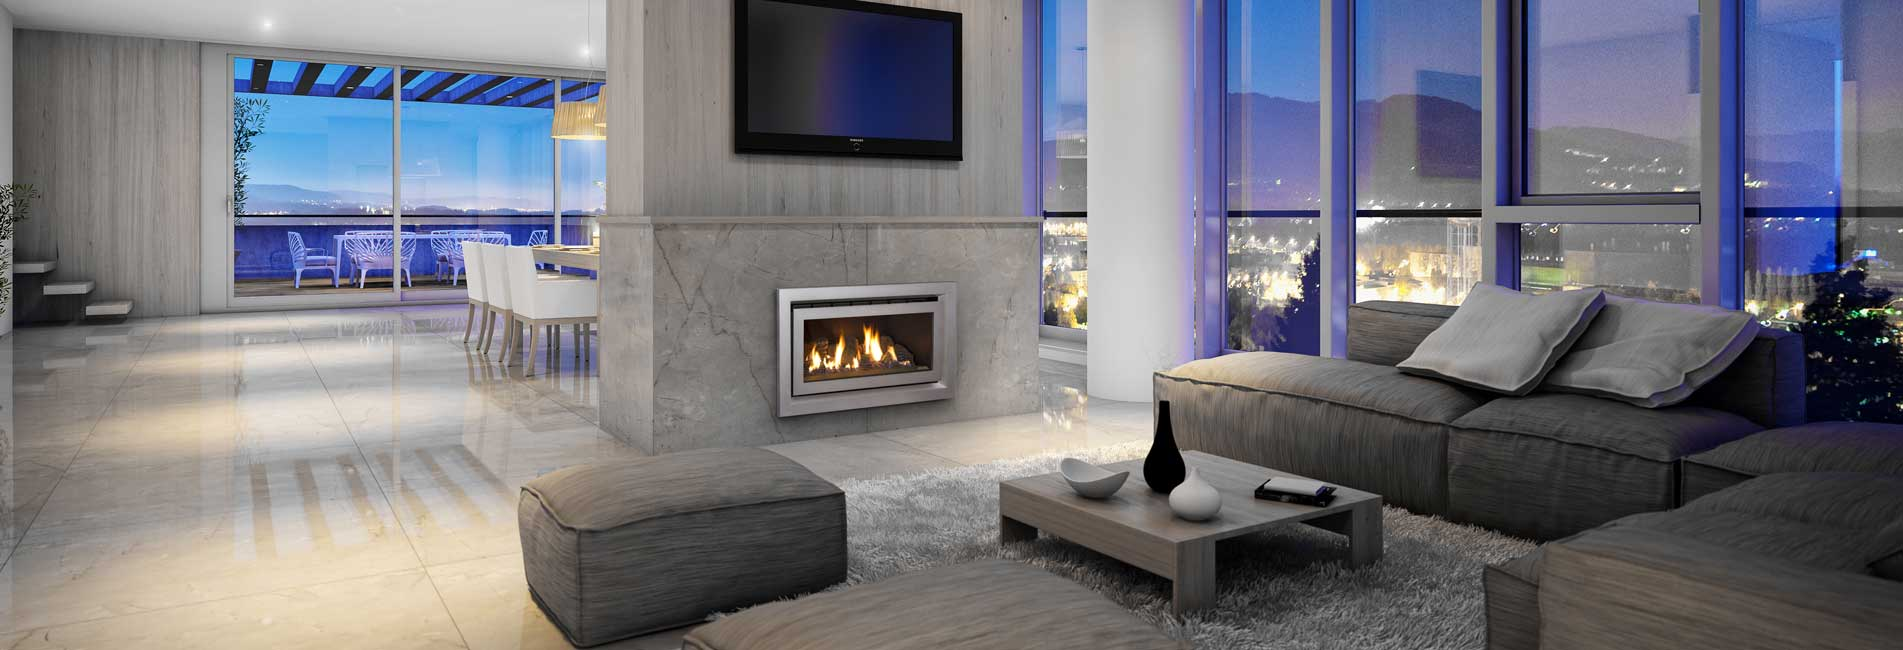 Gas Log Fires Melbourne, Ducted Heating Dandenong, Split Systems Carrum Downs